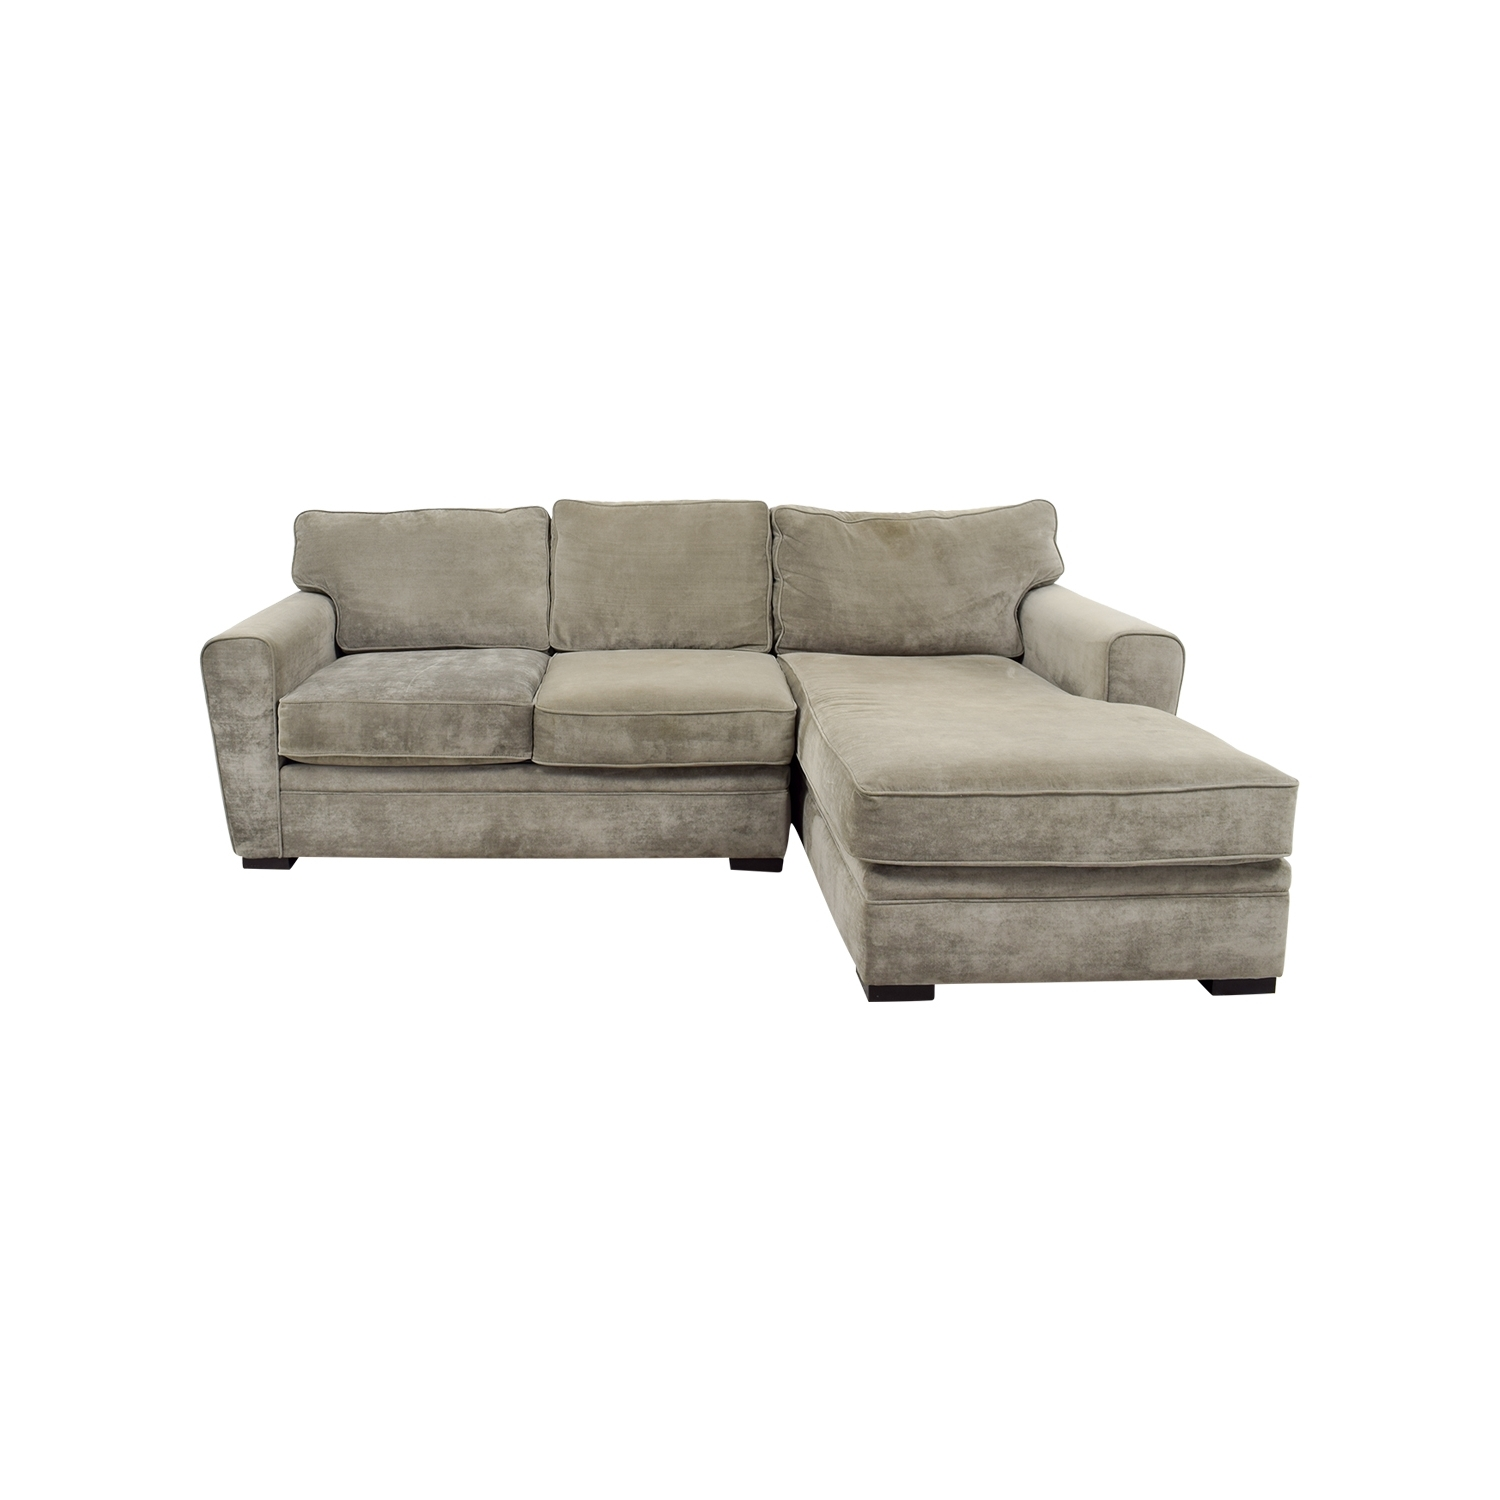 [%60% Off – Crate And Barrel Crate And Barrel Gray Velvet Chaise Regarding Trendy Chaise Loveseats|Chaise Loveseats With Best And Newest 60% Off – Crate And Barrel Crate And Barrel Gray Velvet Chaise|Current Chaise Loveseats Within 60% Off – Crate And Barrel Crate And Barrel Gray Velvet Chaise|Most Recent 60% Off – Crate And Barrel Crate And Barrel Gray Velvet Chaise Regarding Chaise Loveseats%] (View 7 of 15)